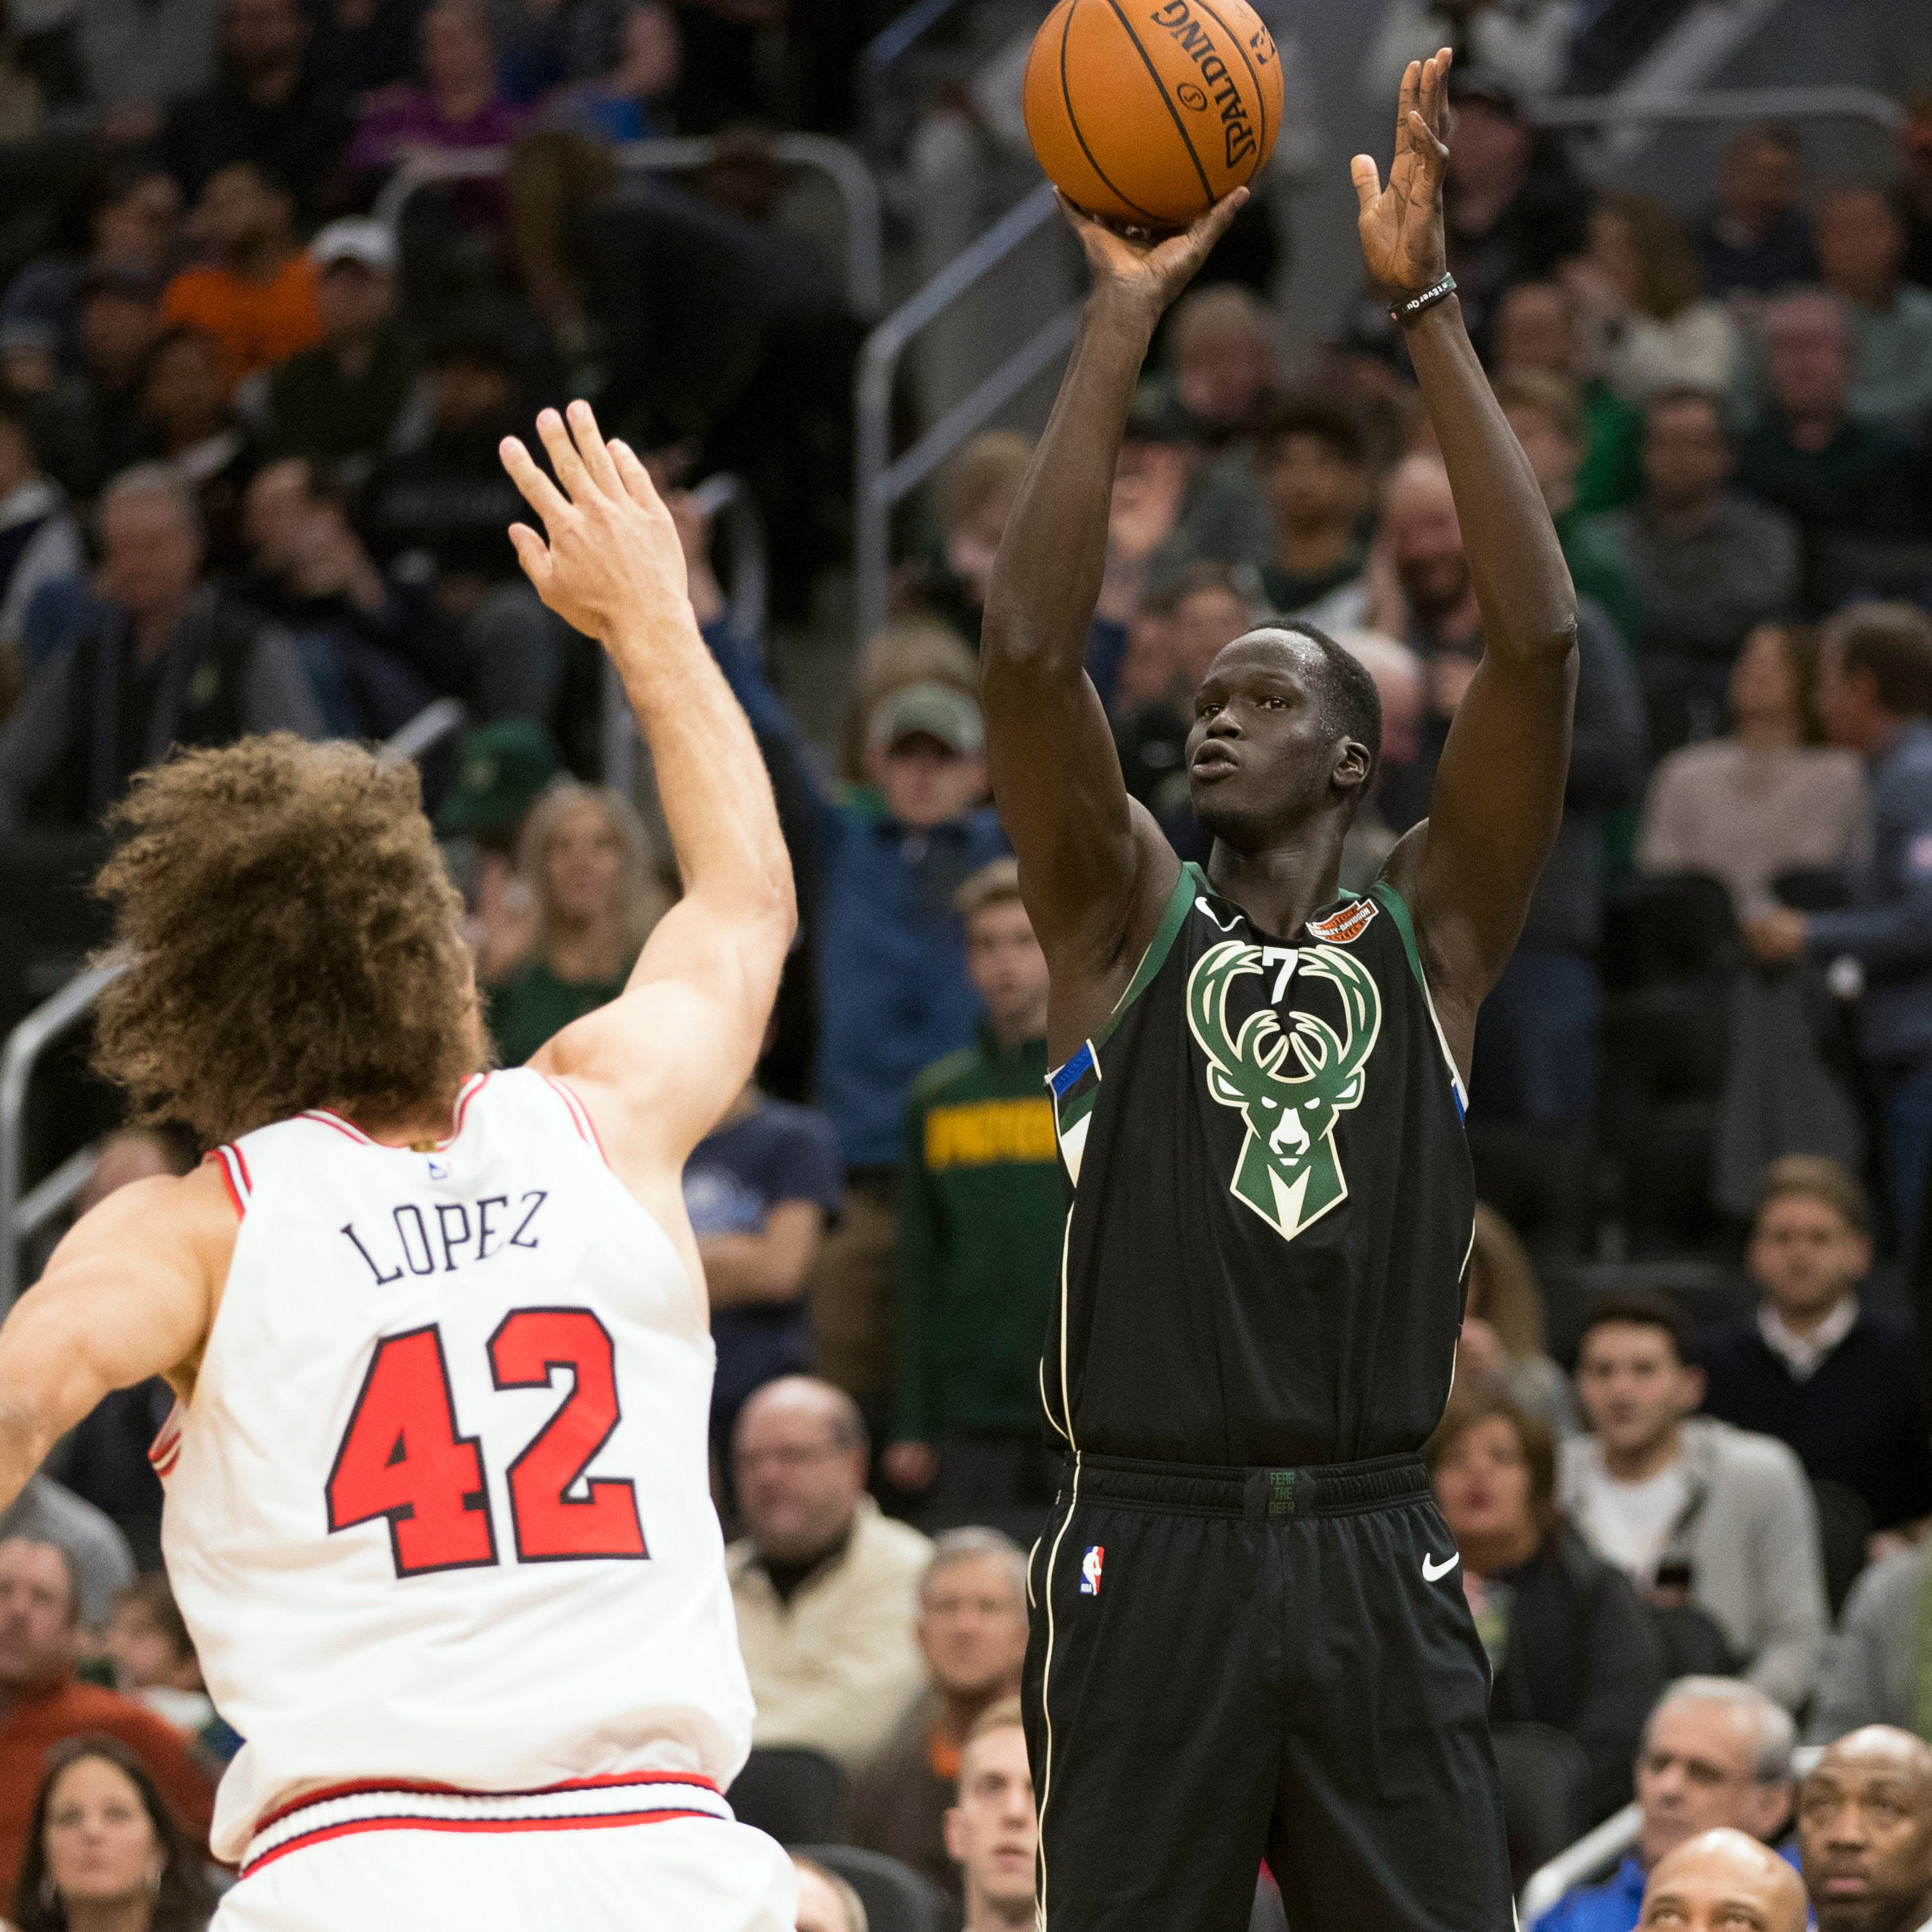 Thon Maker has stayed ready. Now the chance to prove himself has come.